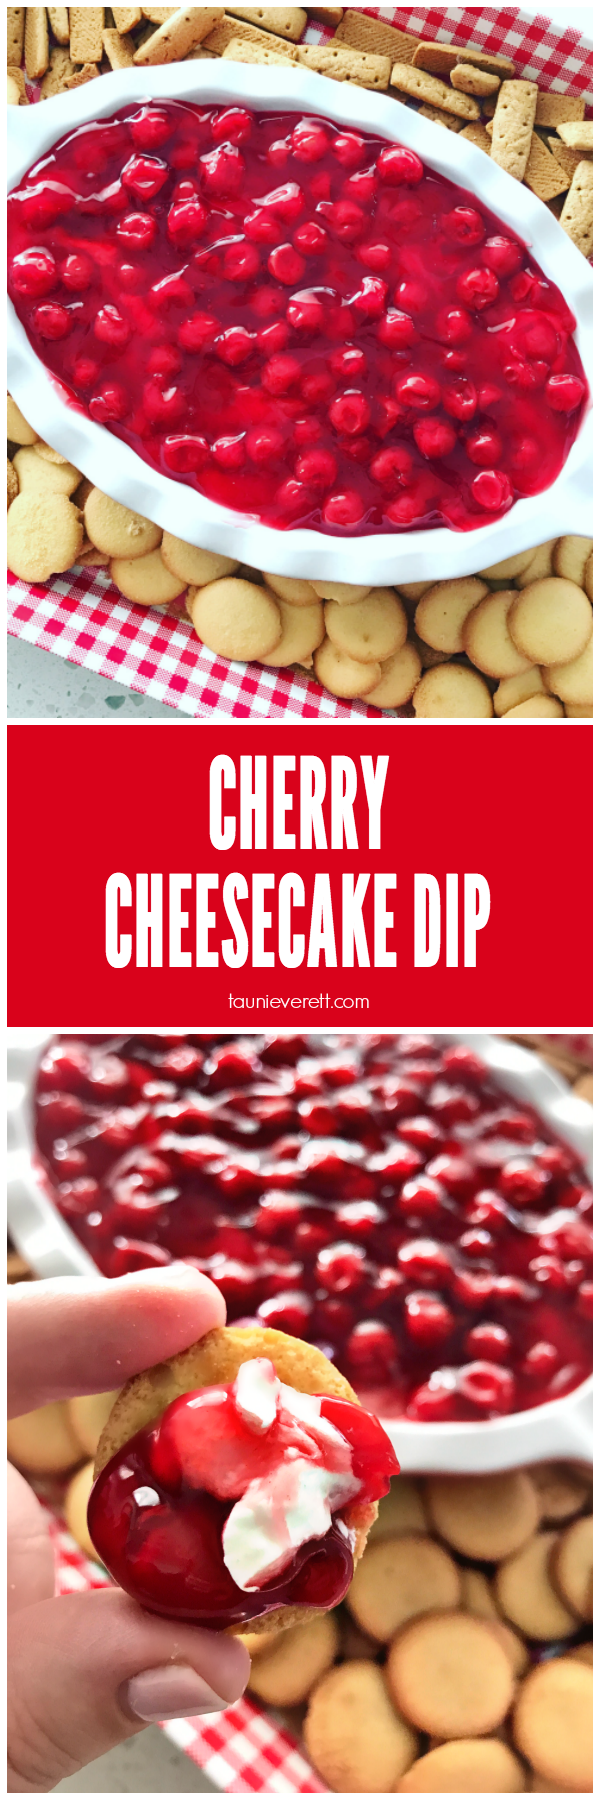 Cherry cheesecake dip recipe. Make in less than five minutes, serves a crowd. #cherry #cherrycheesecake #dip #dessert